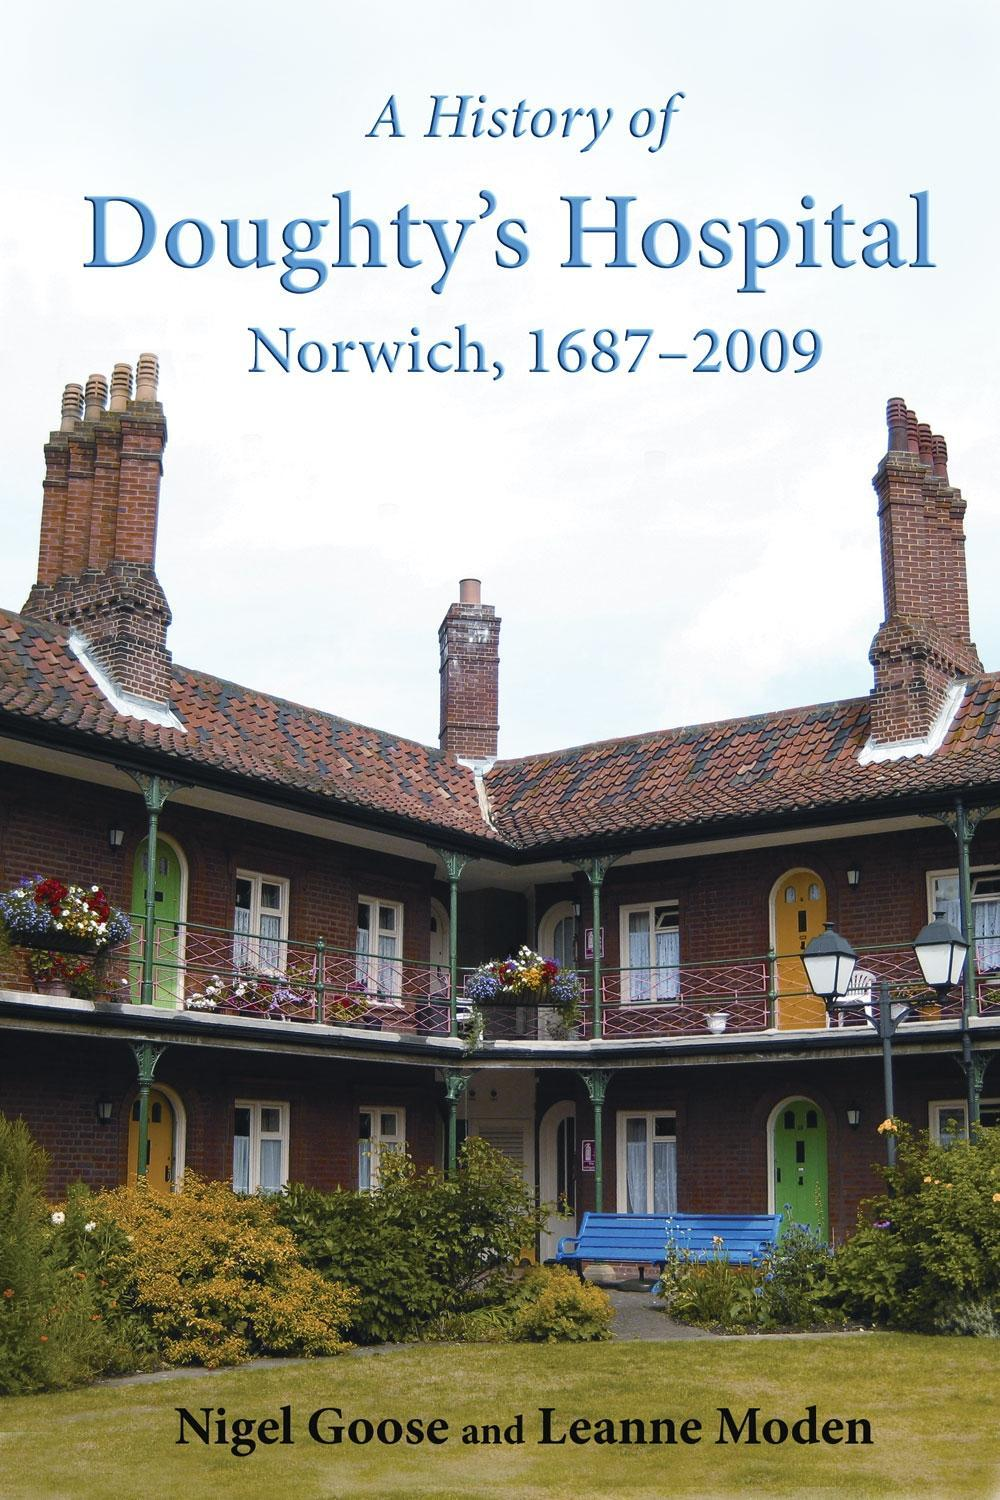 A History of Doughty's Hospital, Norwich, 1687-2009 EB9781907396069